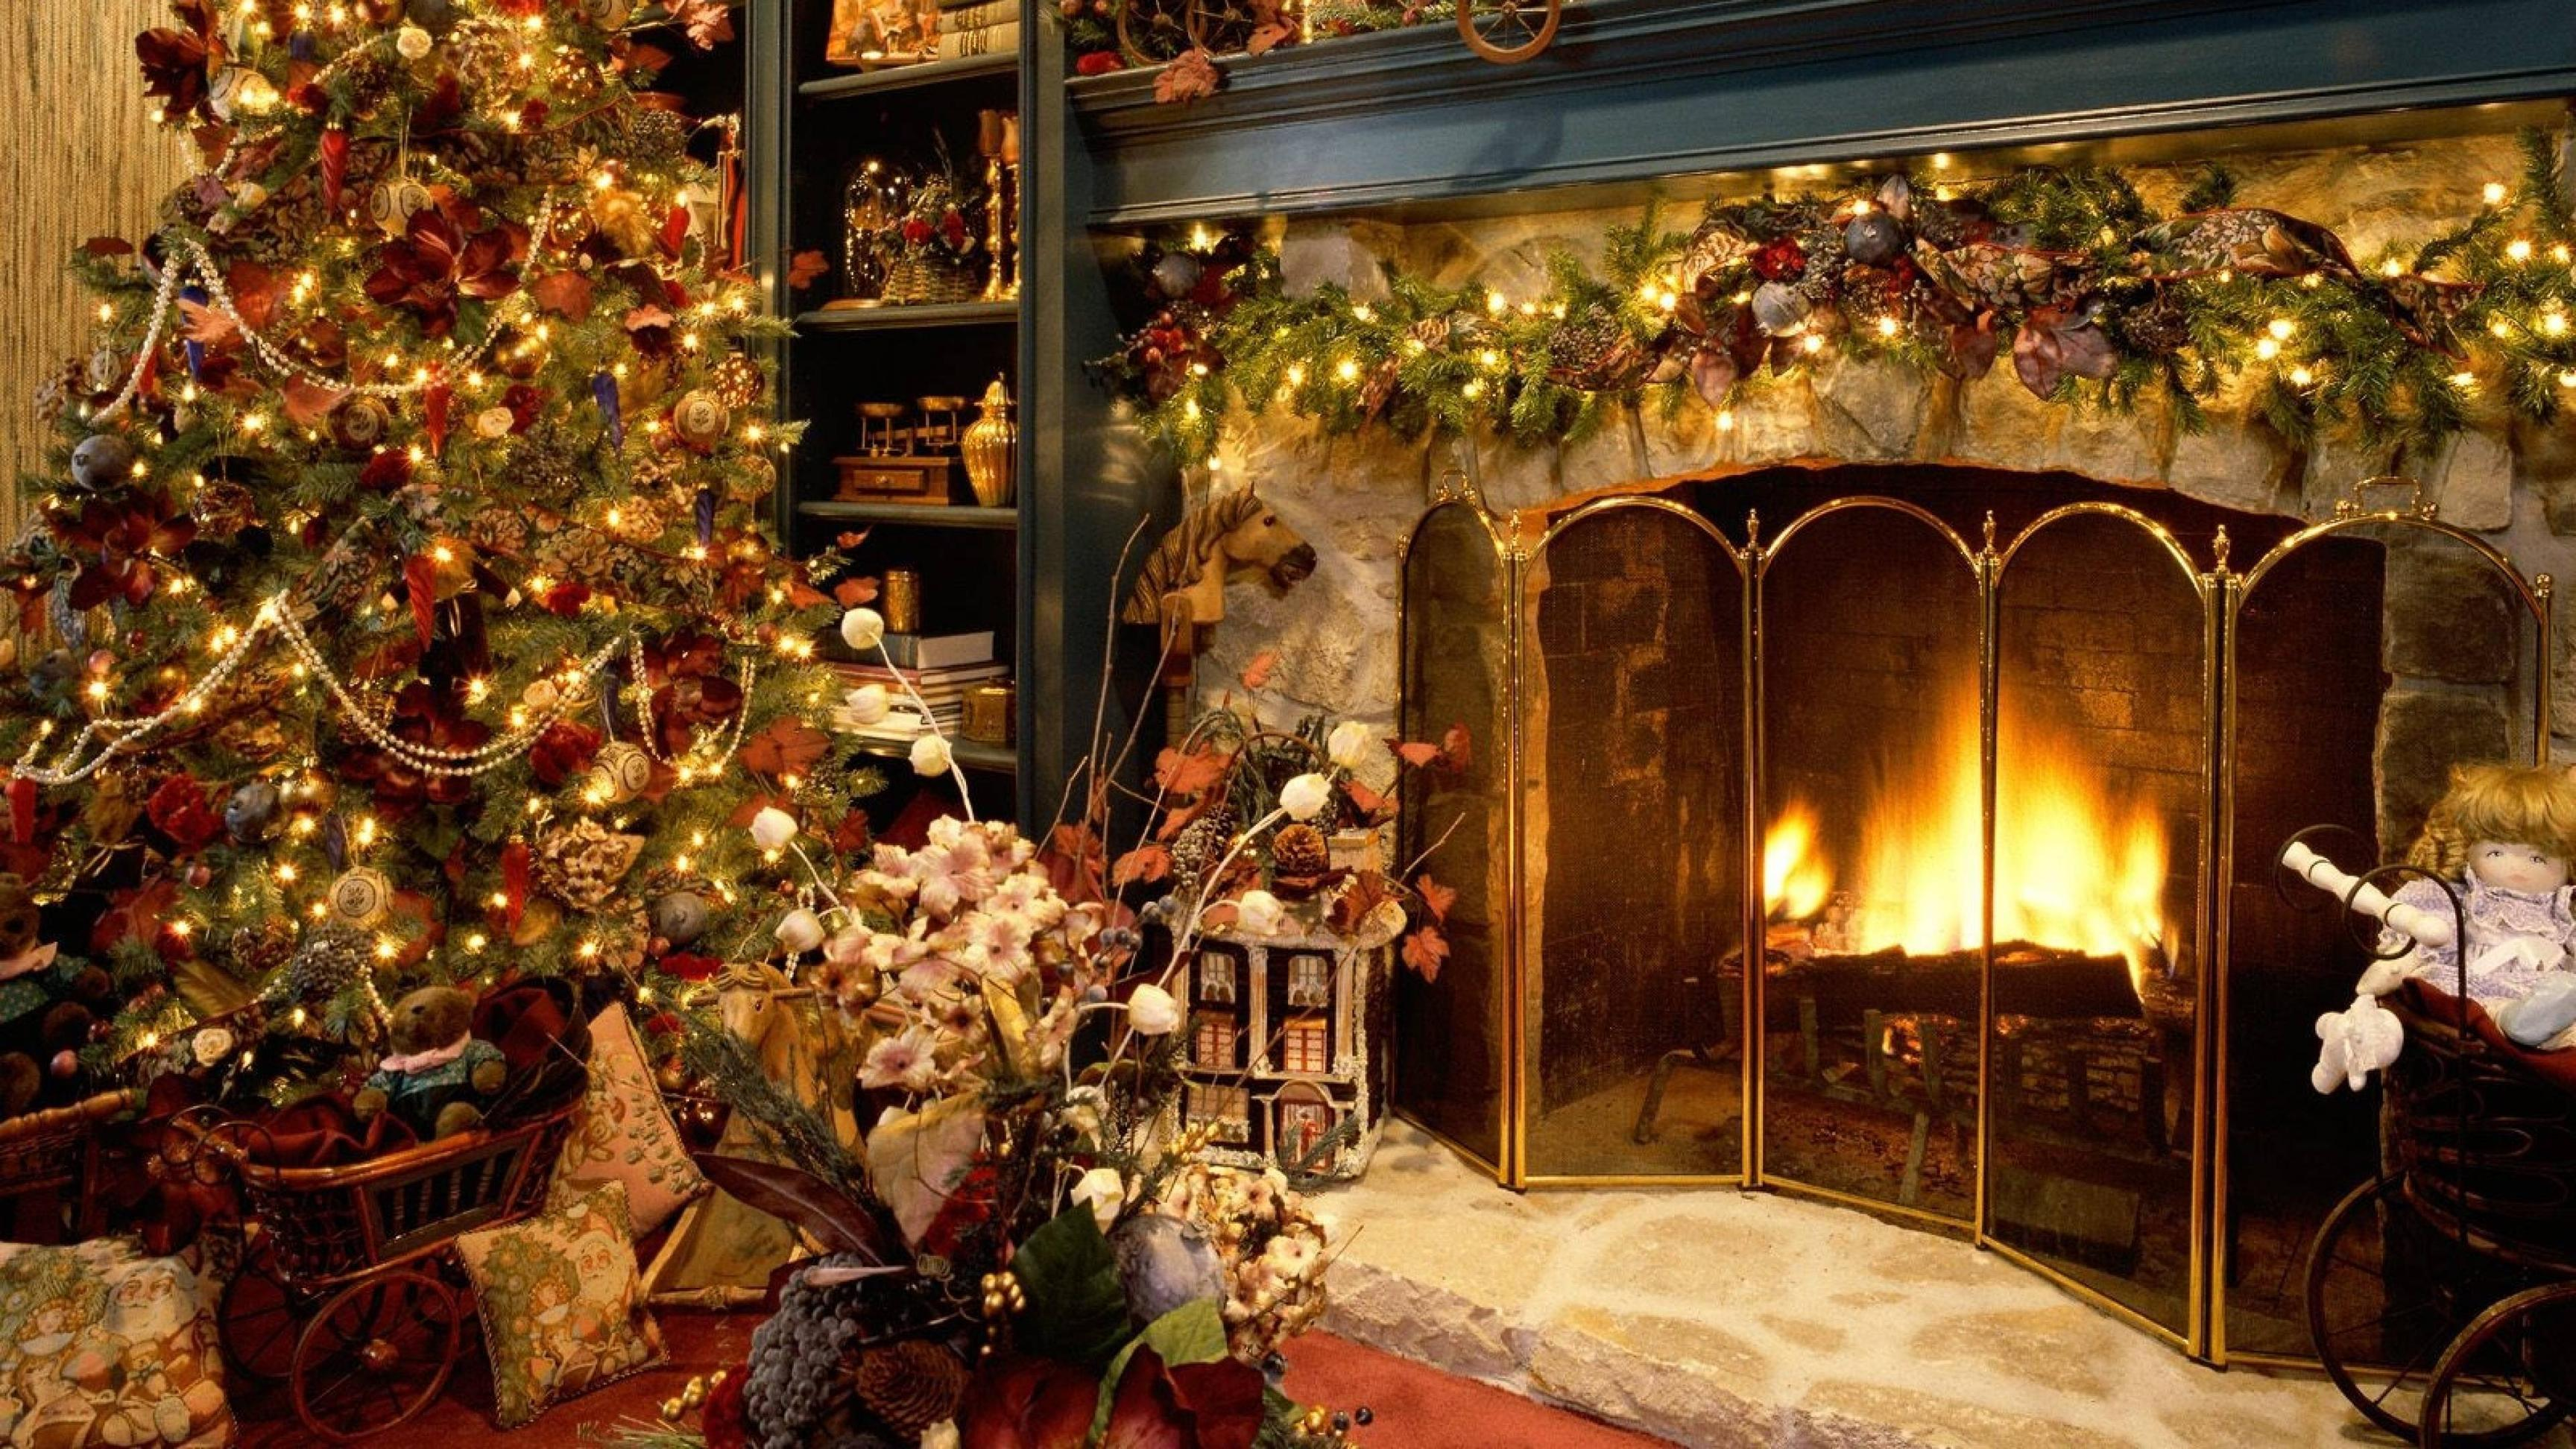 Christmas Fireplace Wallpapers